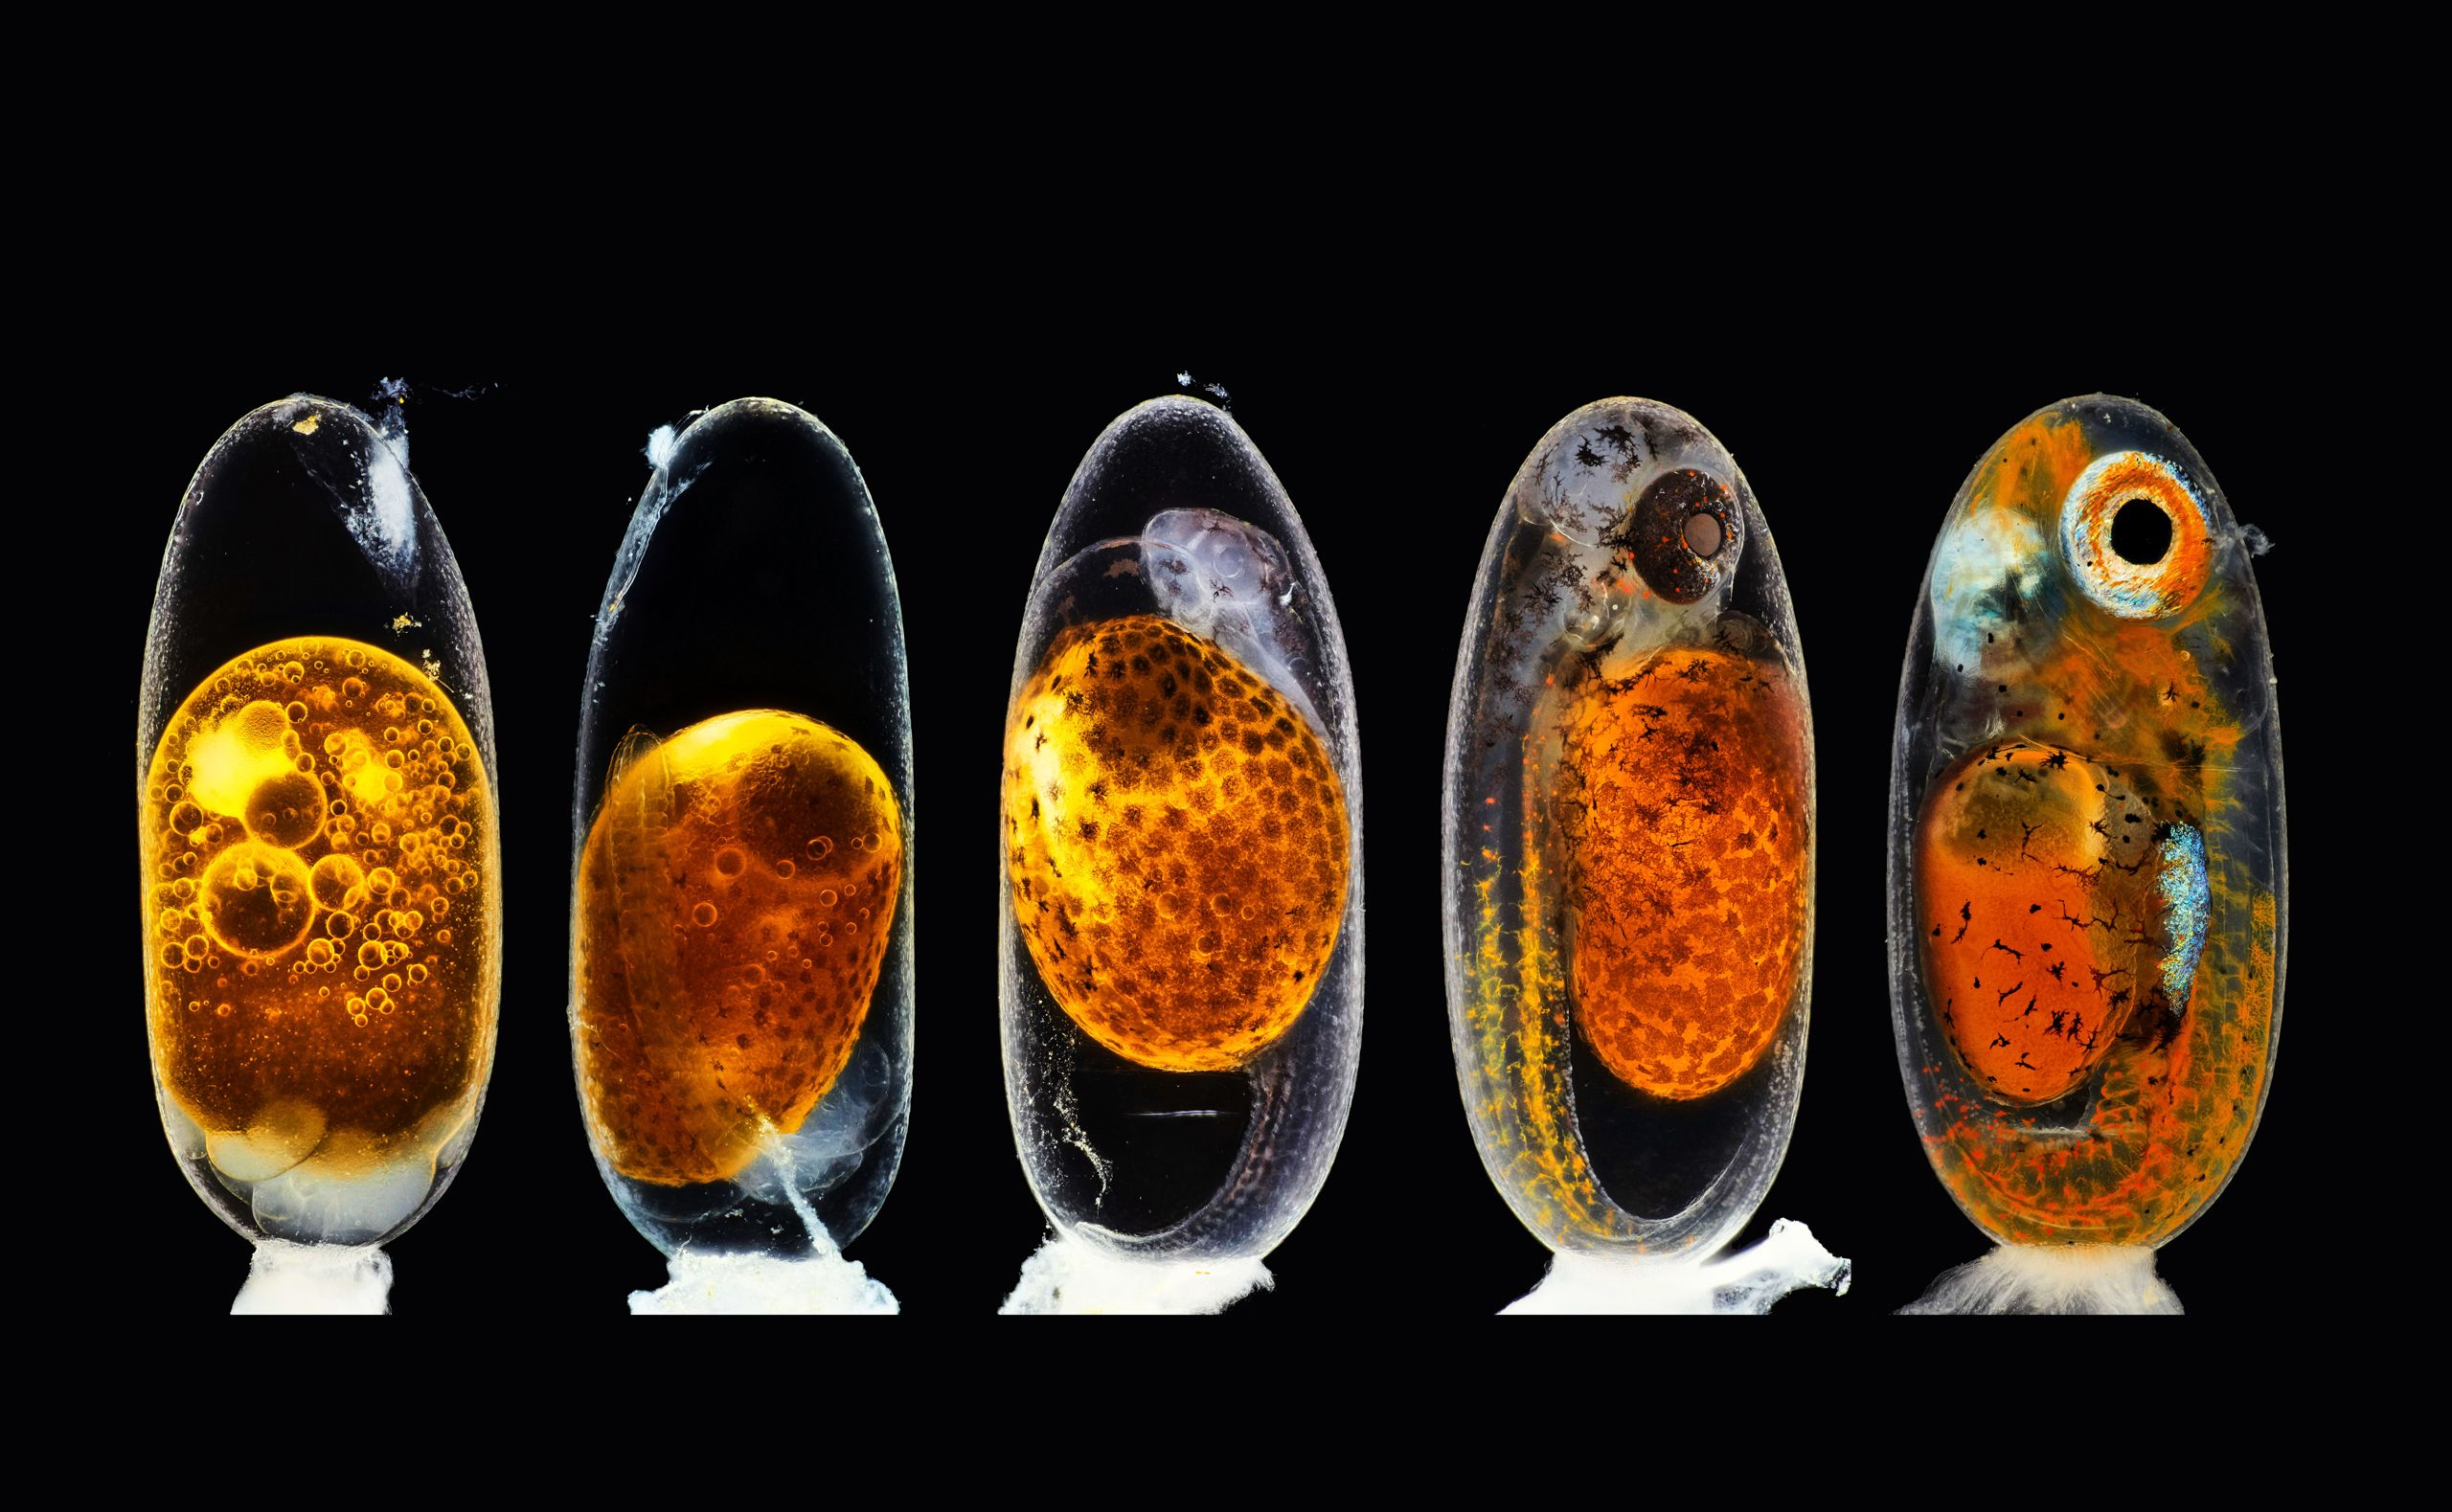 Row of five images of a clownfish embryo at different stages of development